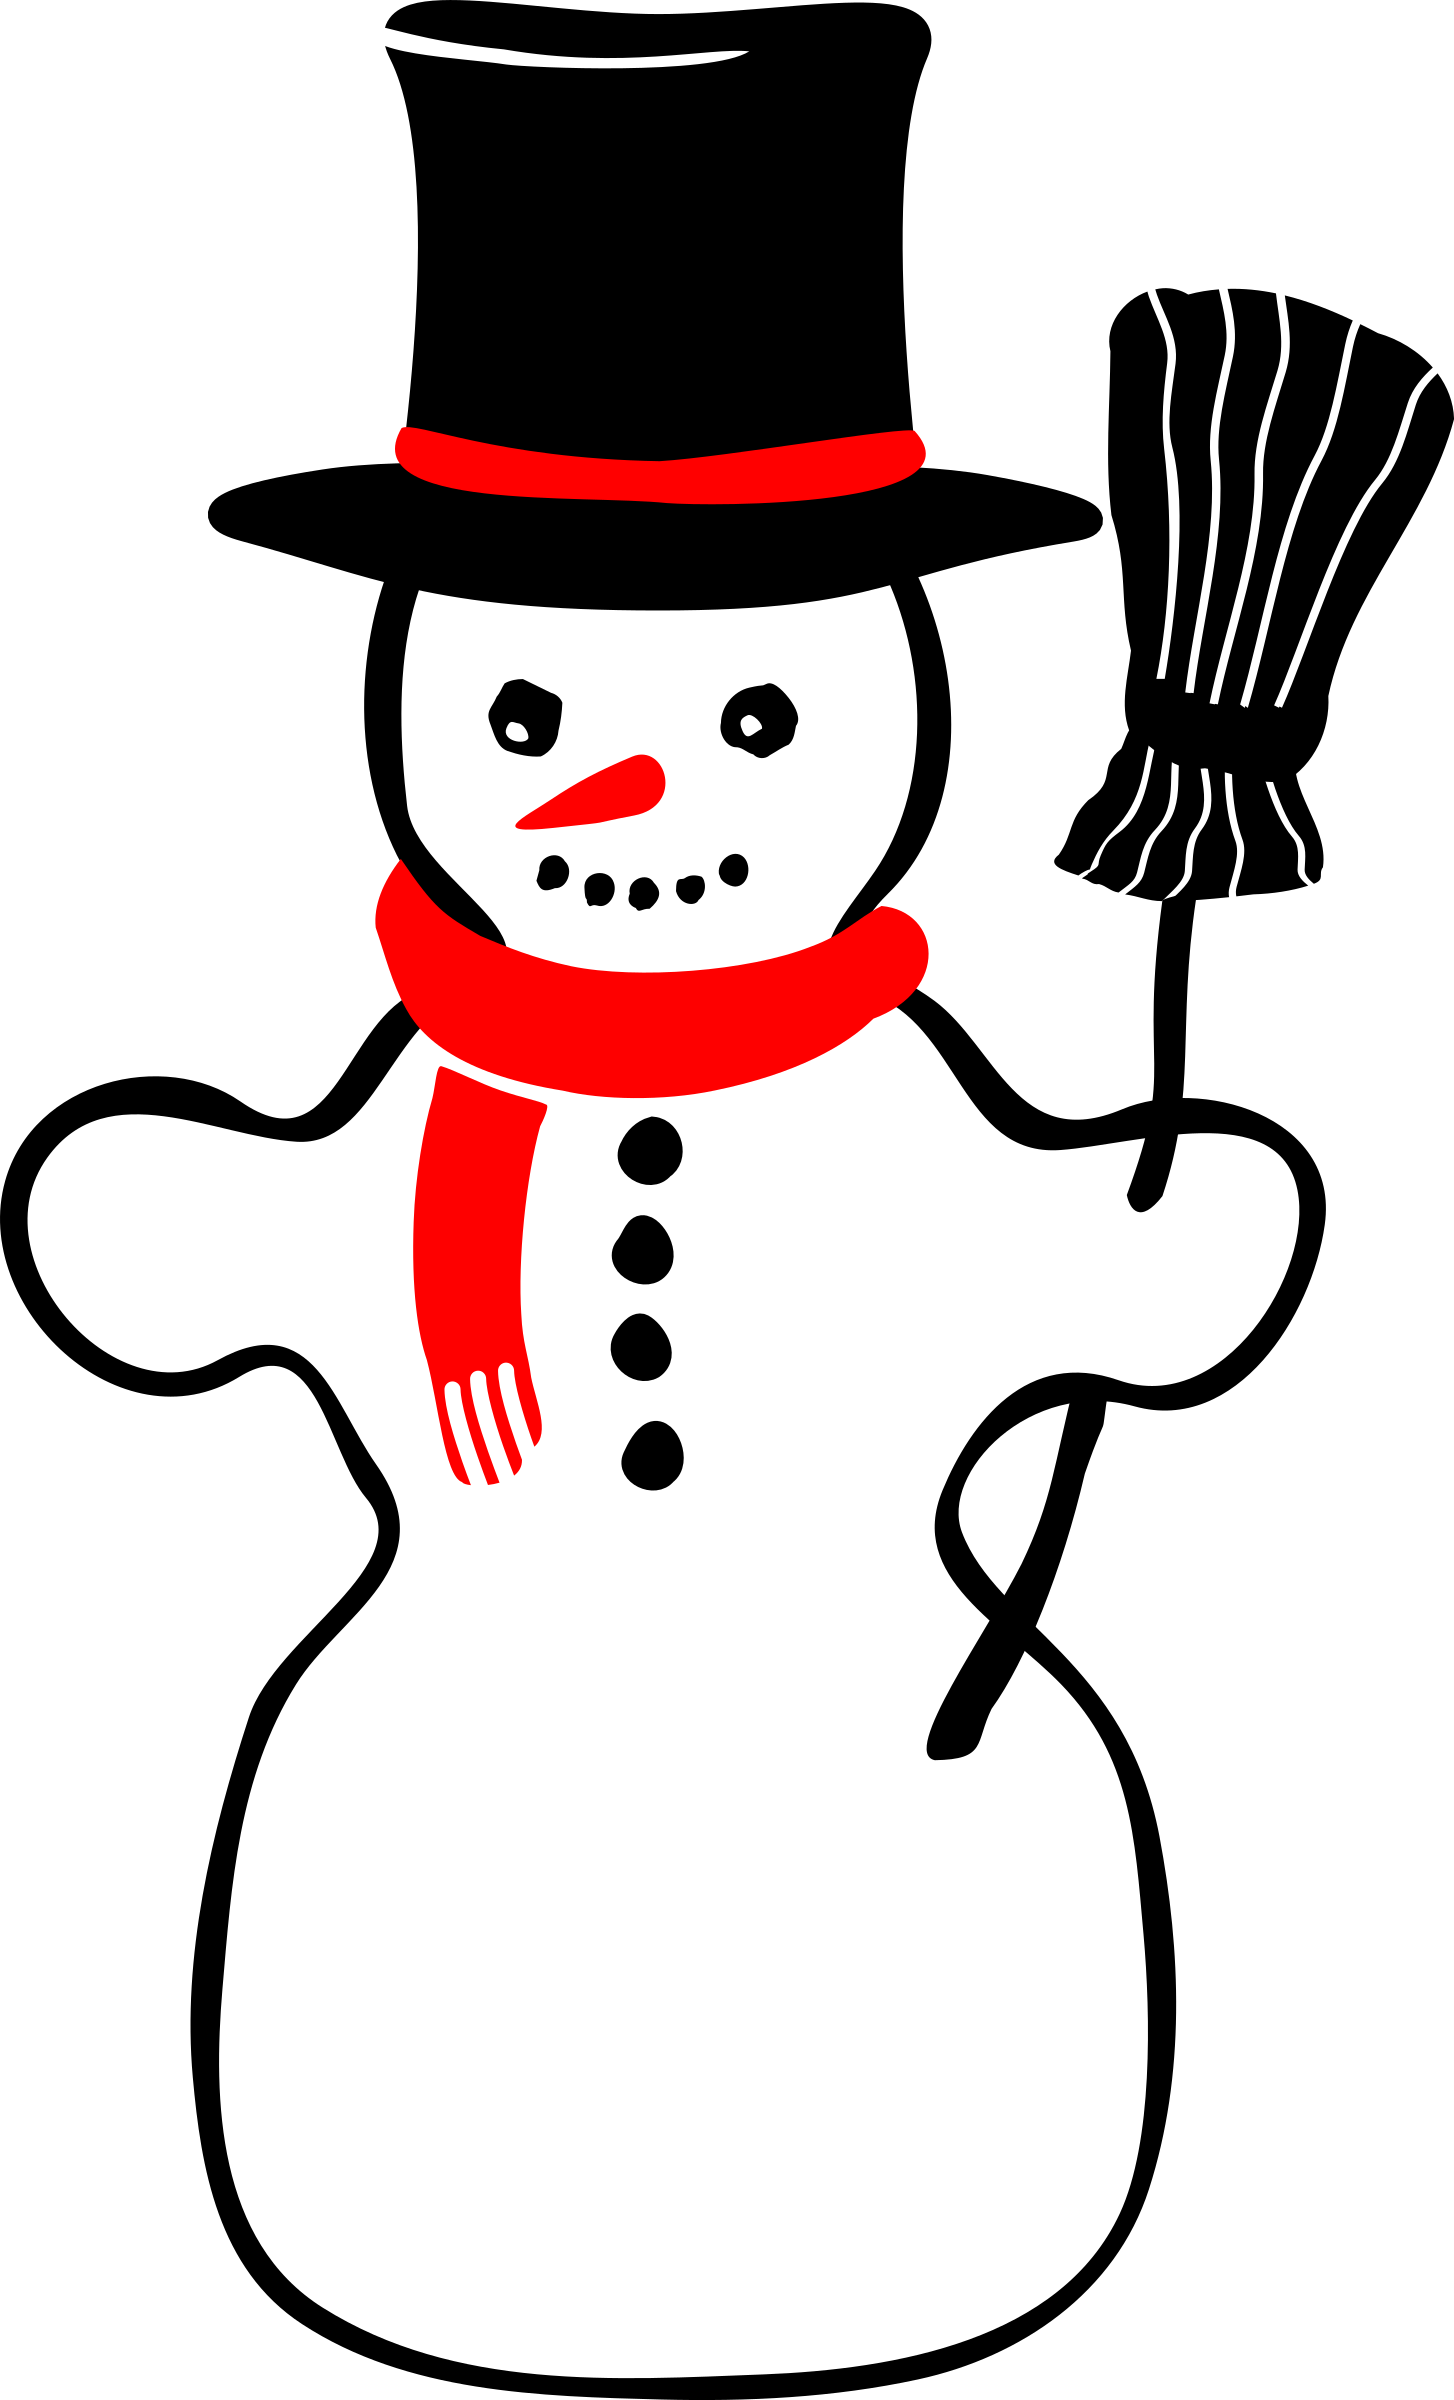 snowman by artmaster